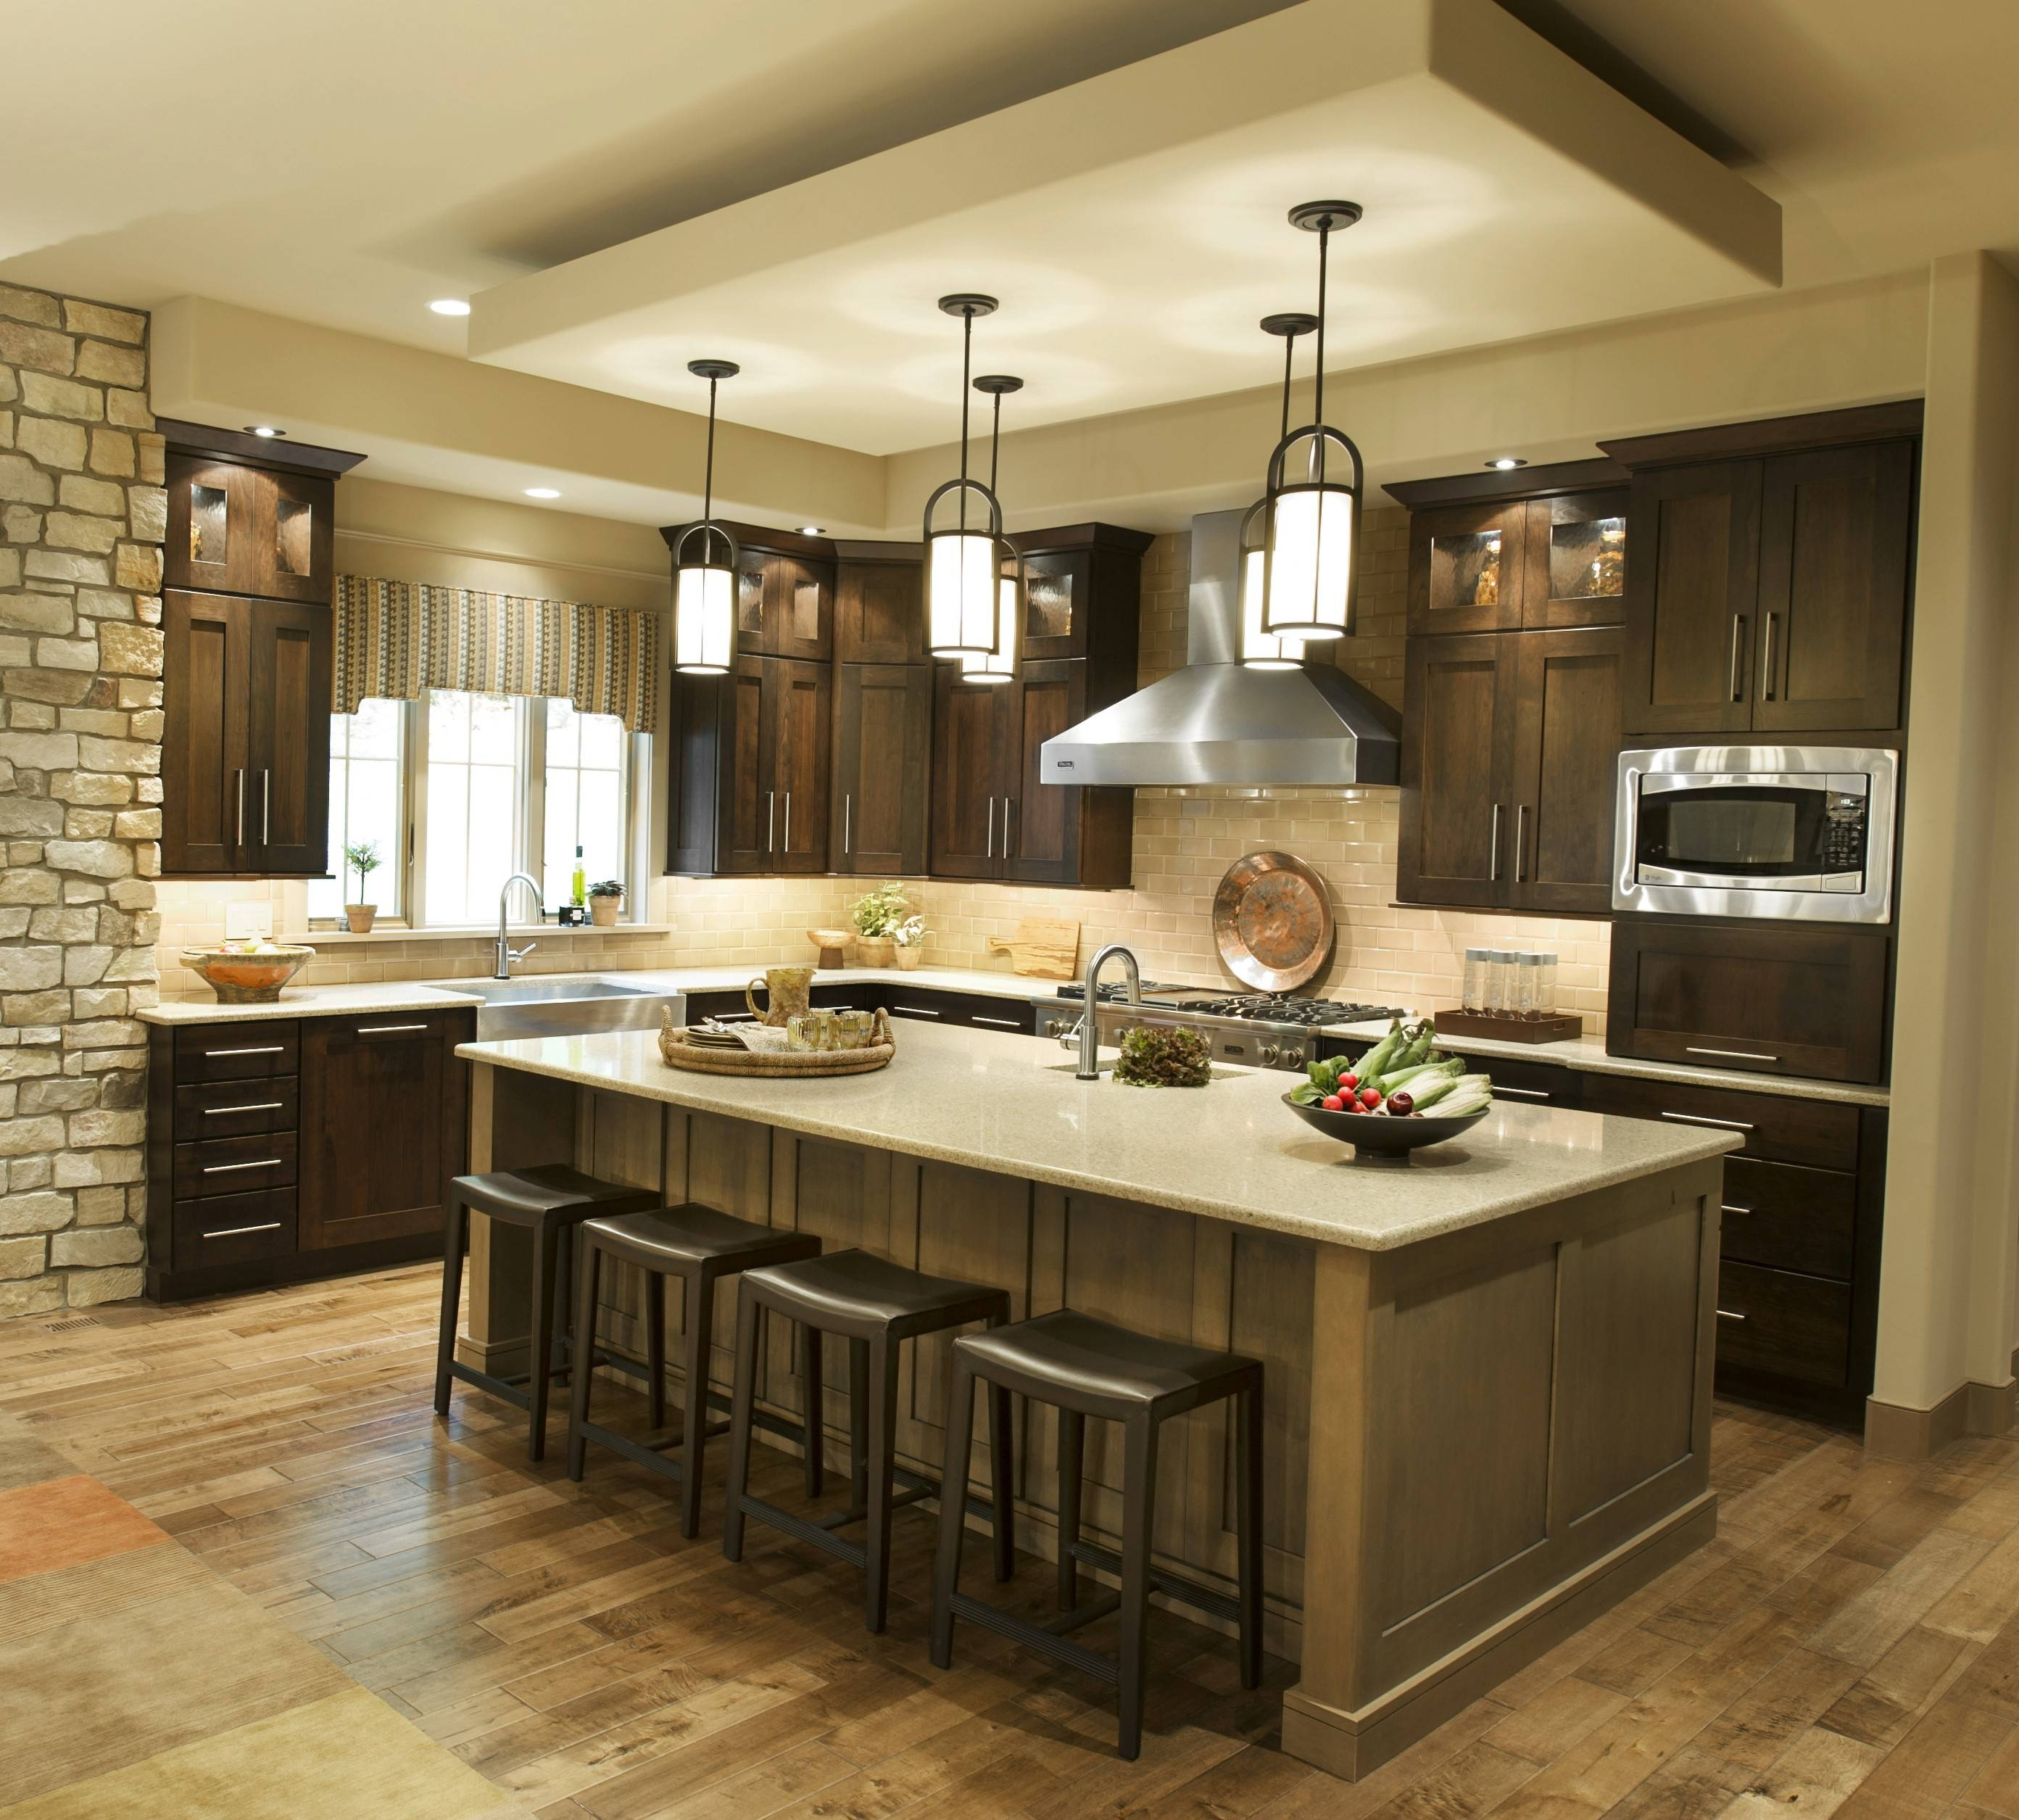 Awesome Pendant Lighting Over Kitchen Island Also Mini Lights For with regard to Double Pendant Lights for Kitchen (Image 3 of 15)